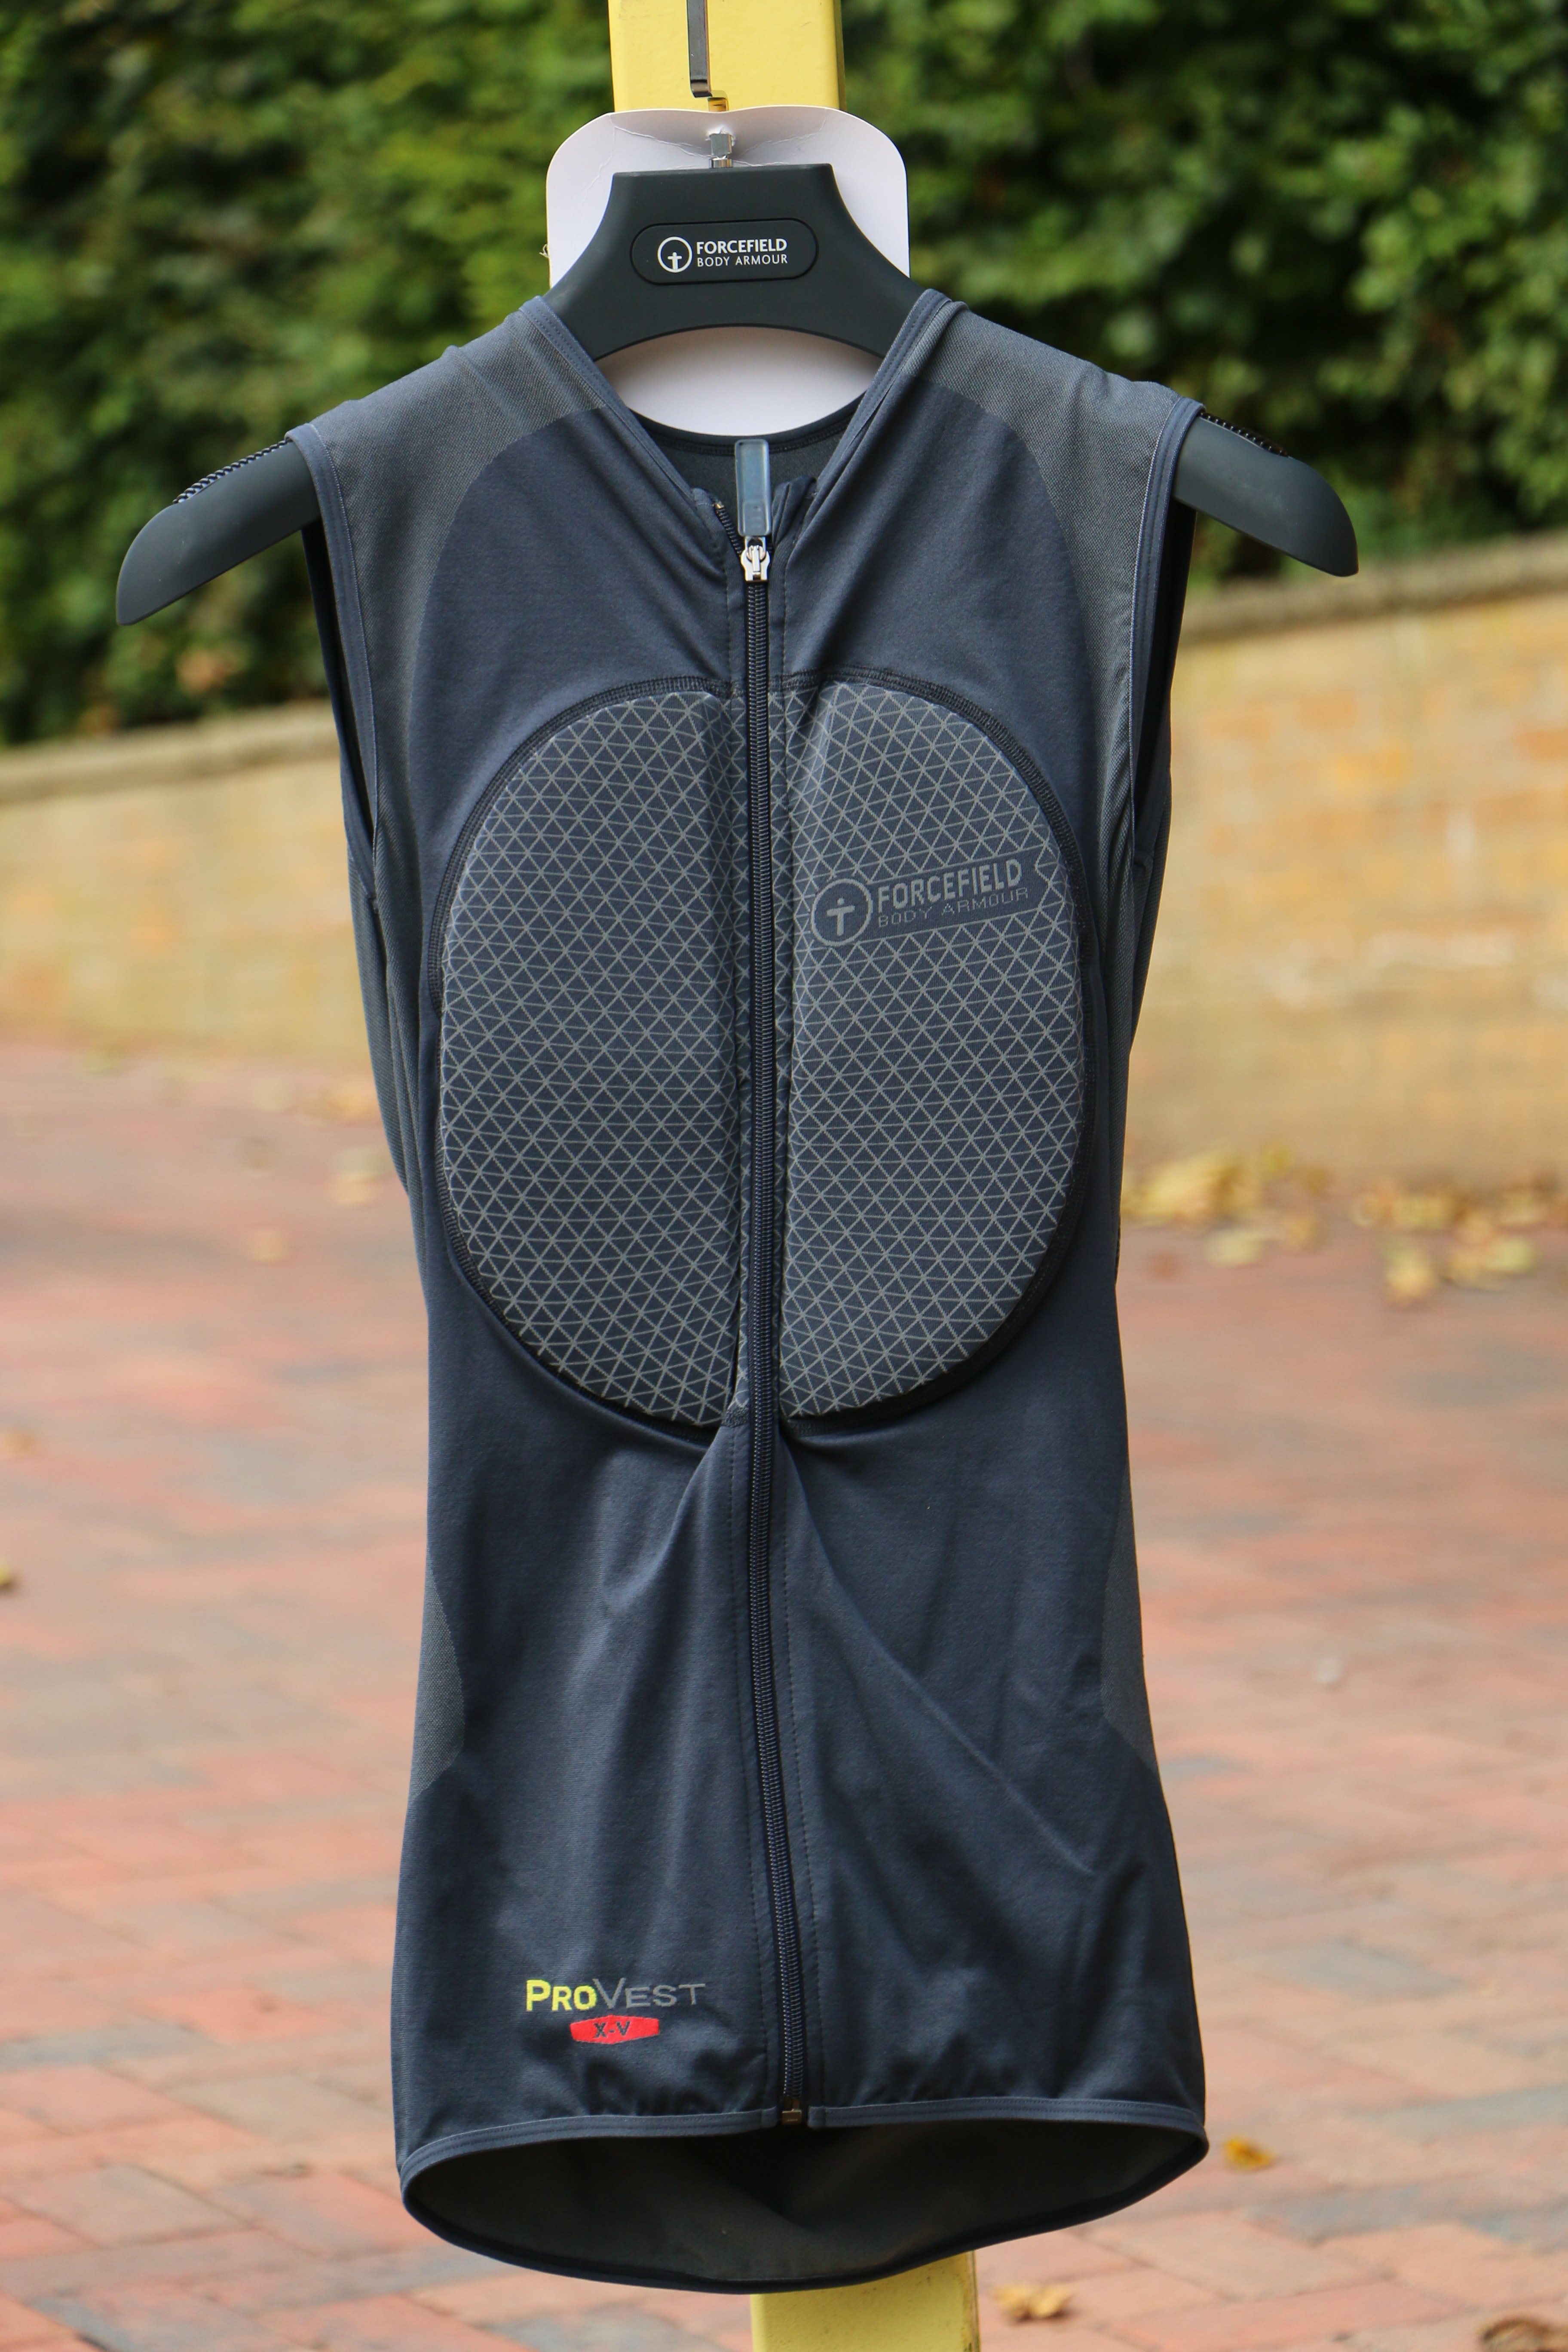 Forcefield Body Armour - Pro Vest X-V sweepstakes